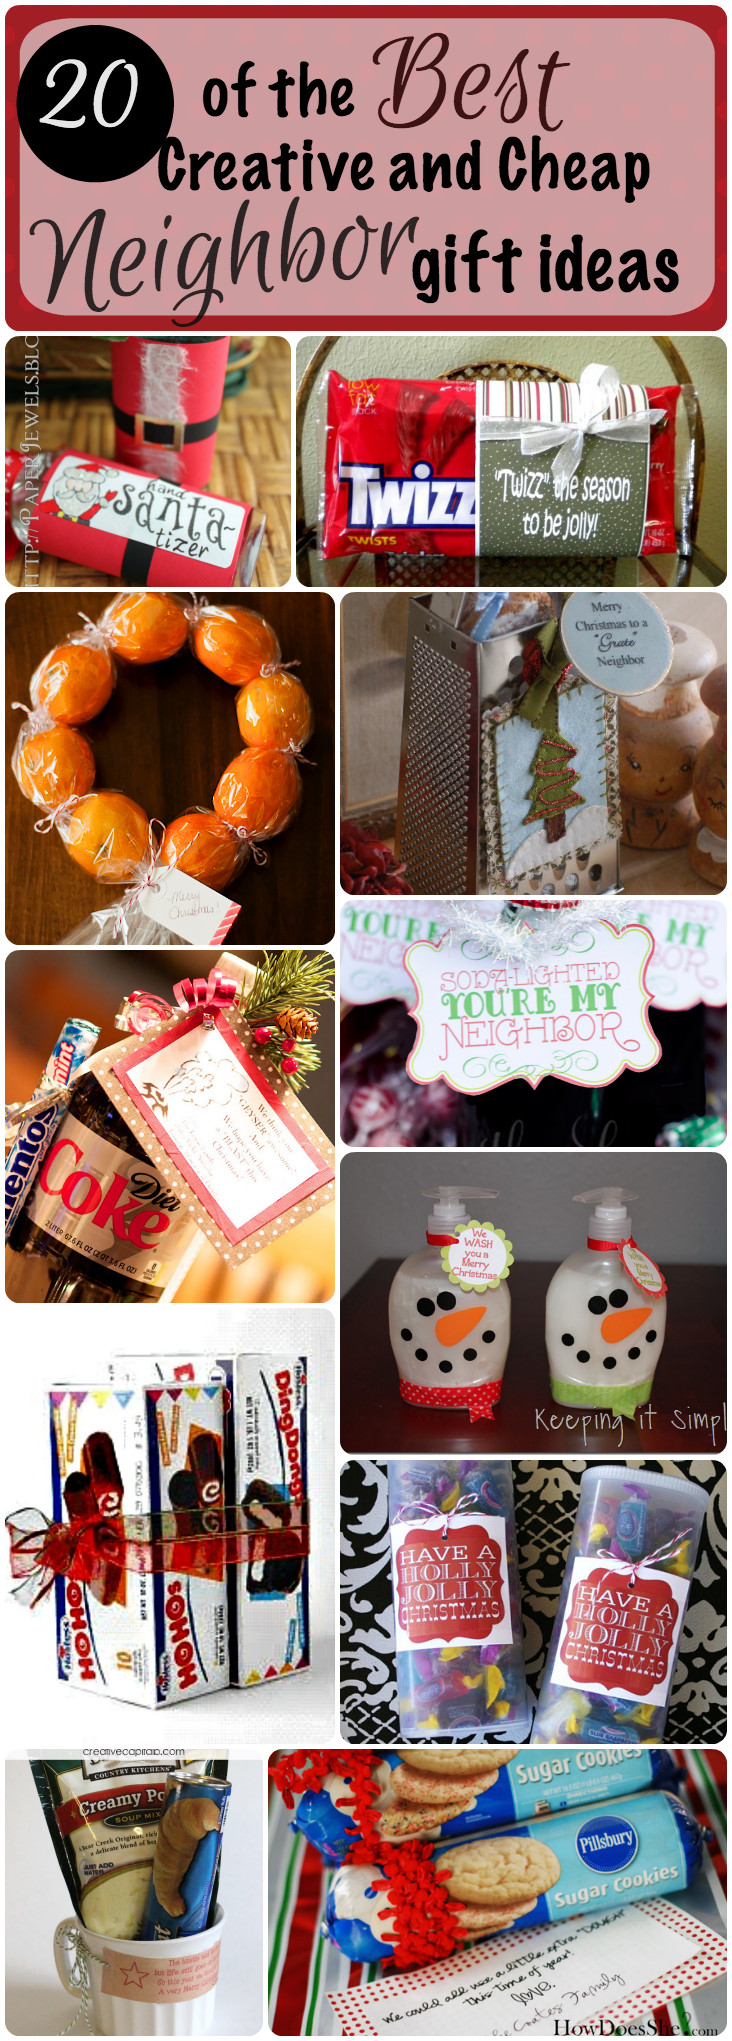 Best ideas about Top Gift Ideas . Save or Pin 20 of the Best Creative and Cheap Neighbor Gifts for Christmas Now.